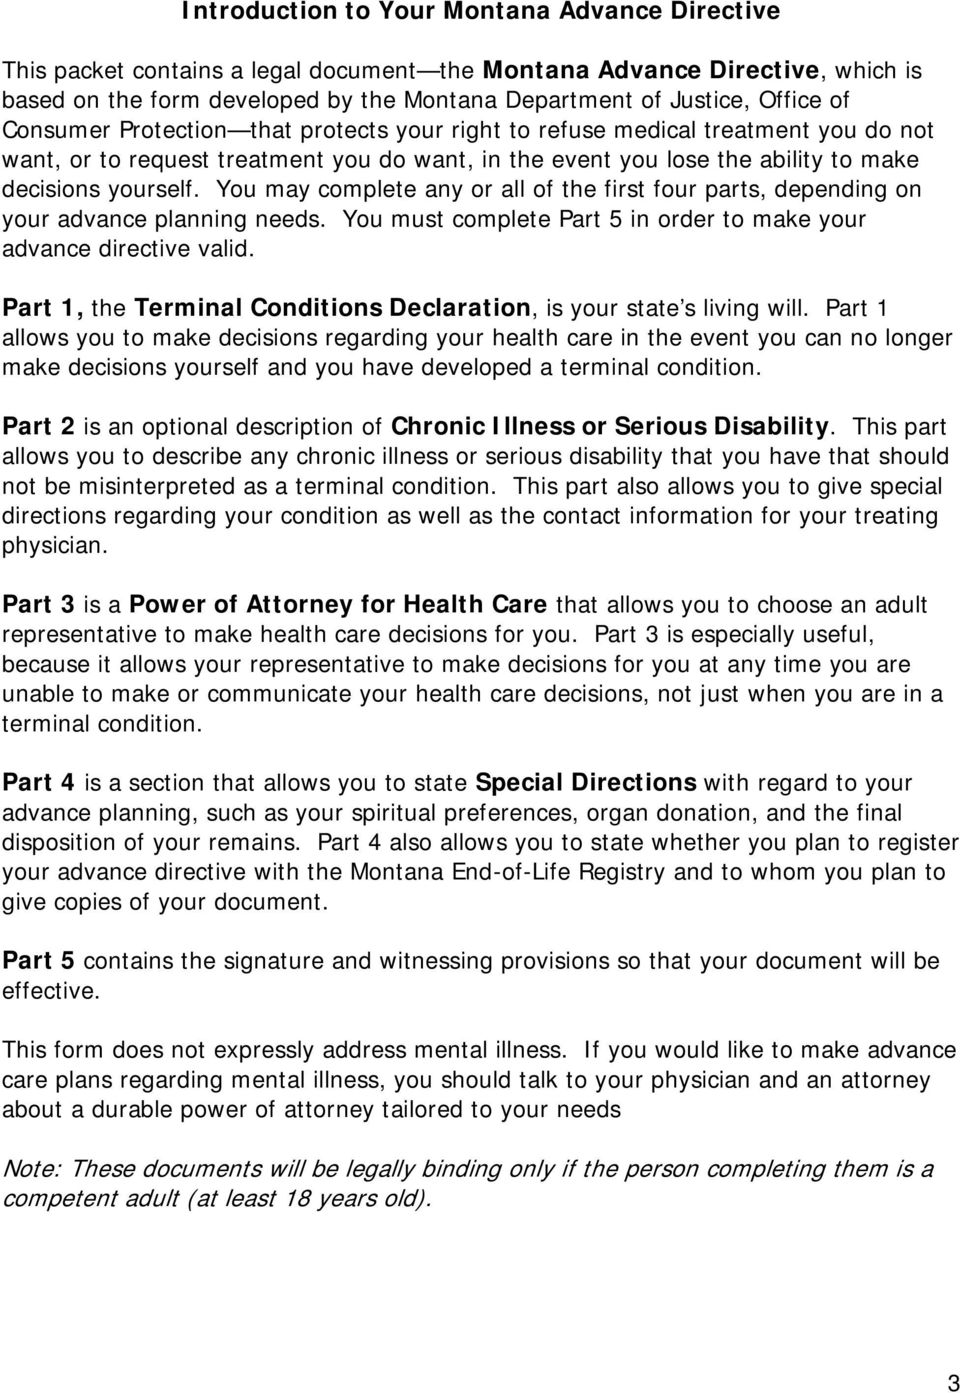 You may complete any or all of the first four parts, depending on your advance planning needs. You must complete Part 5 in order to make your advance directive valid.